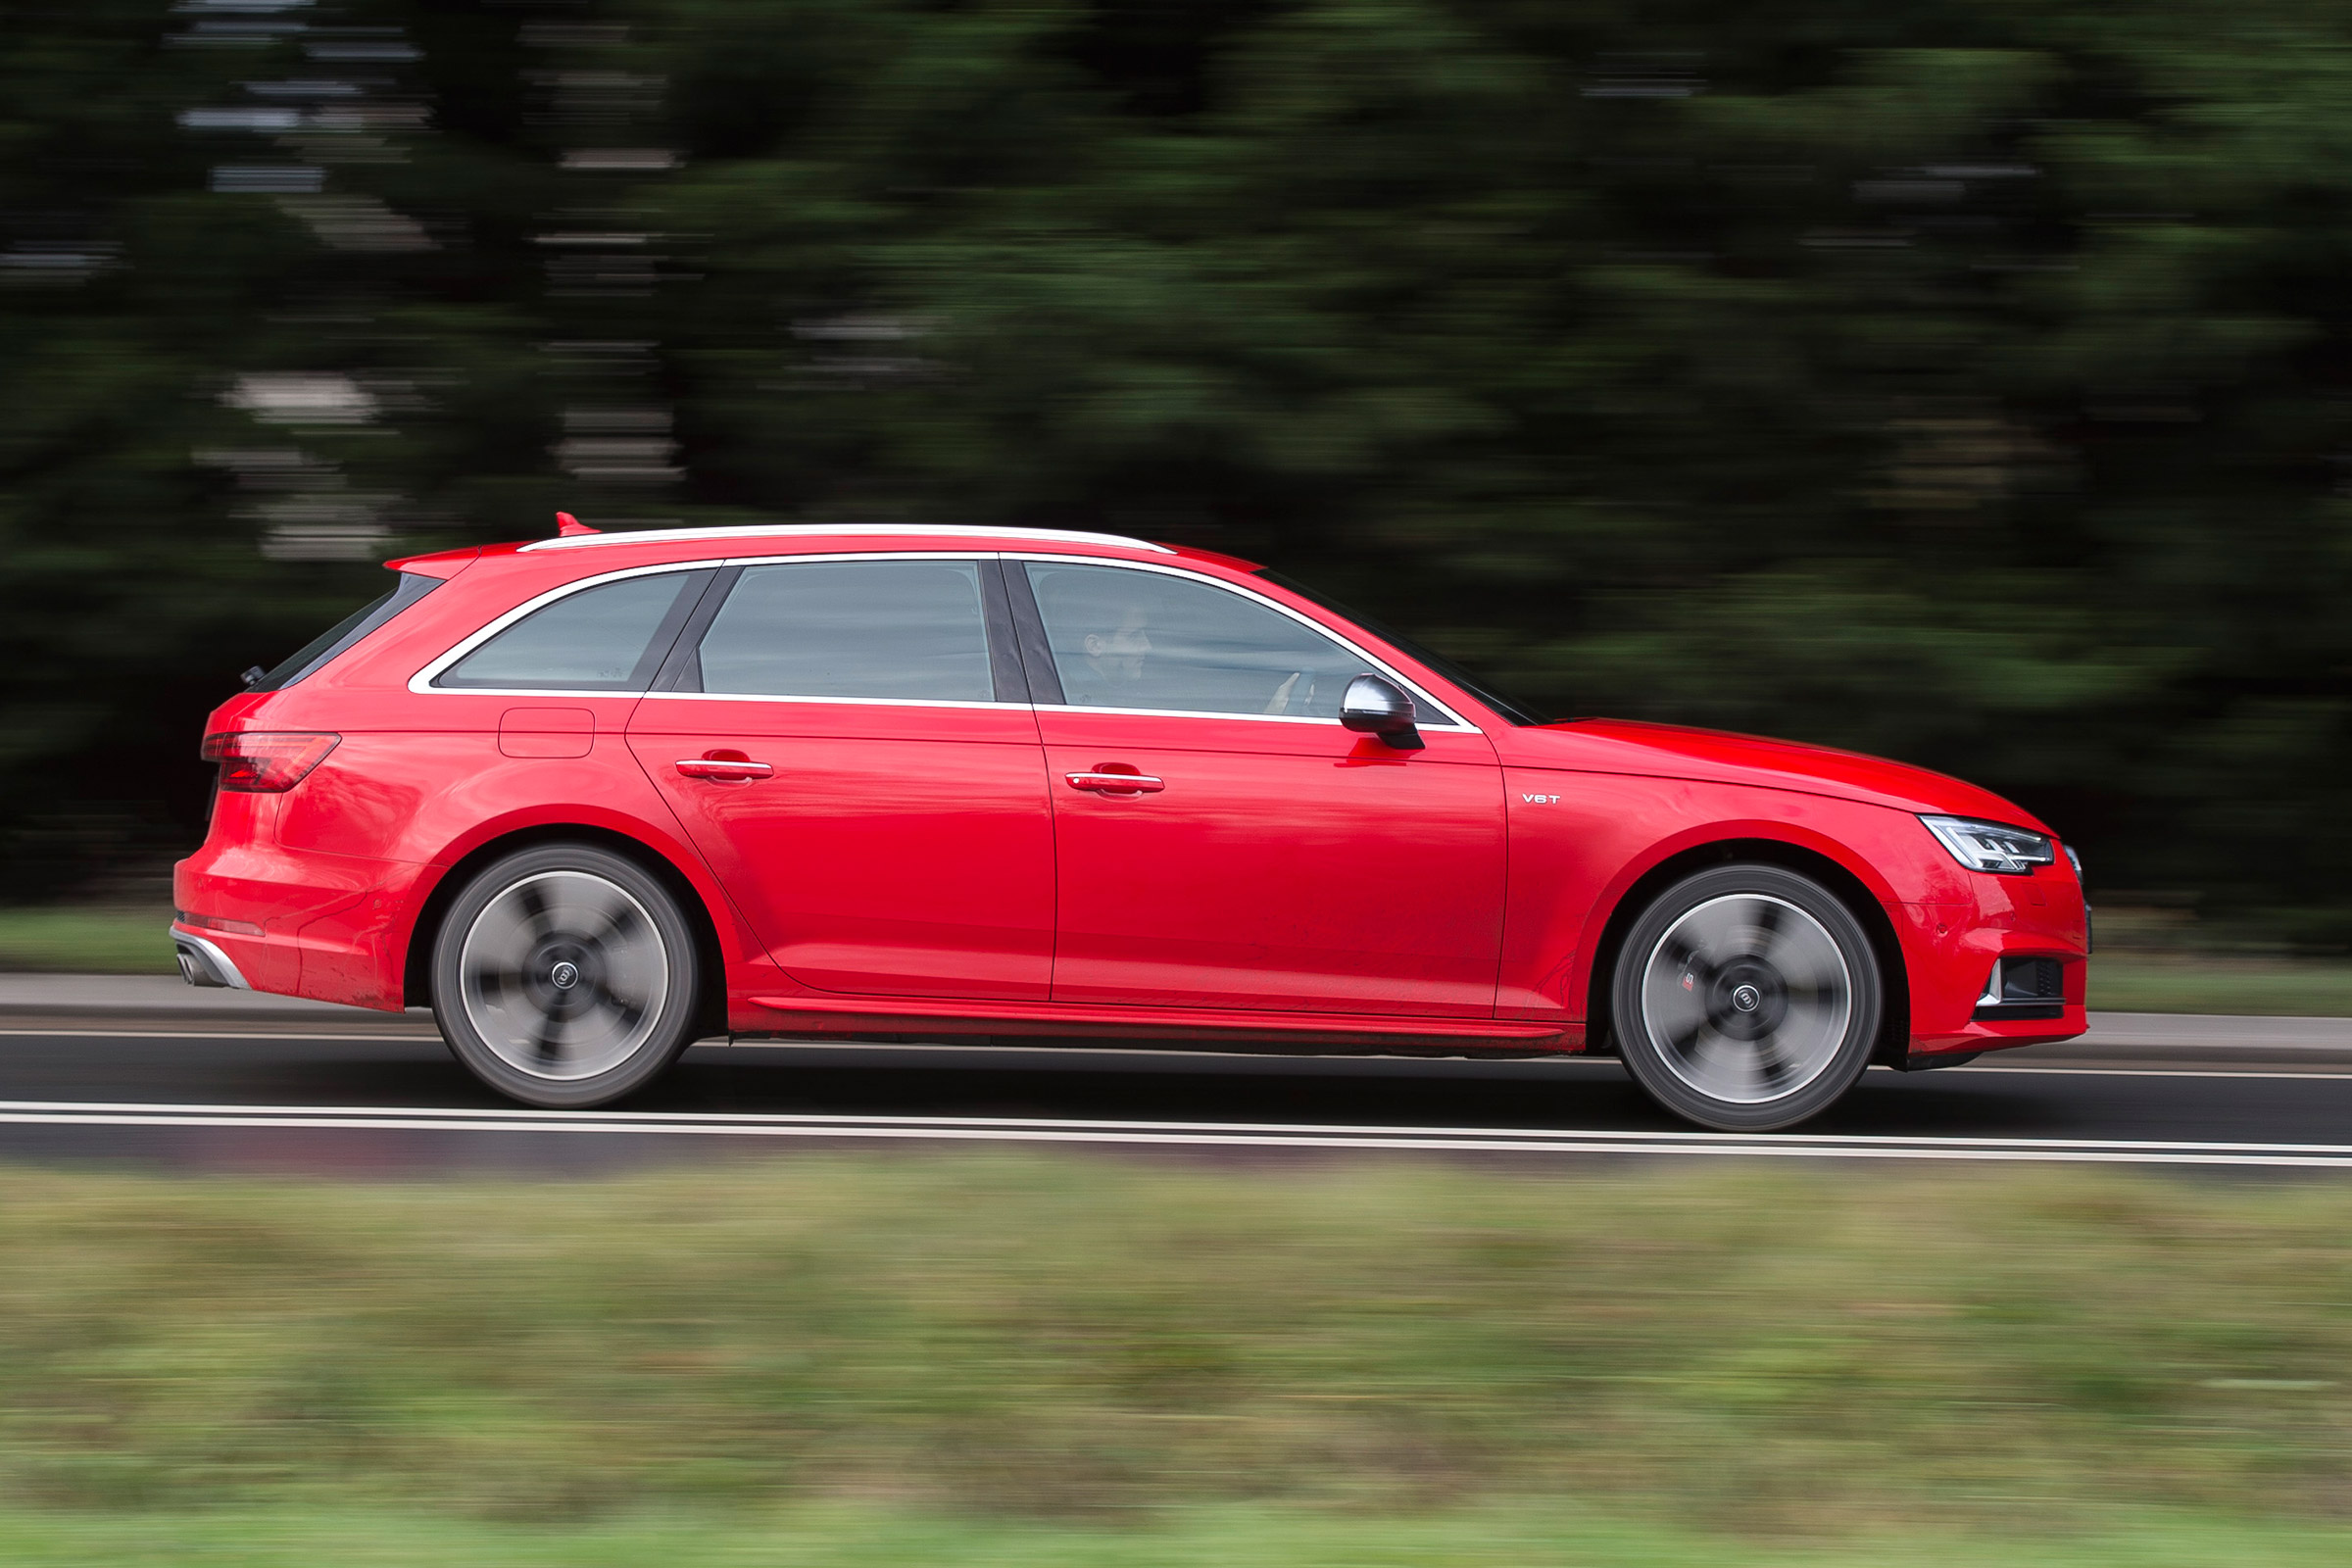 2017 Audi S4 Avant Test Drive Side View (Photo 17 of 17)